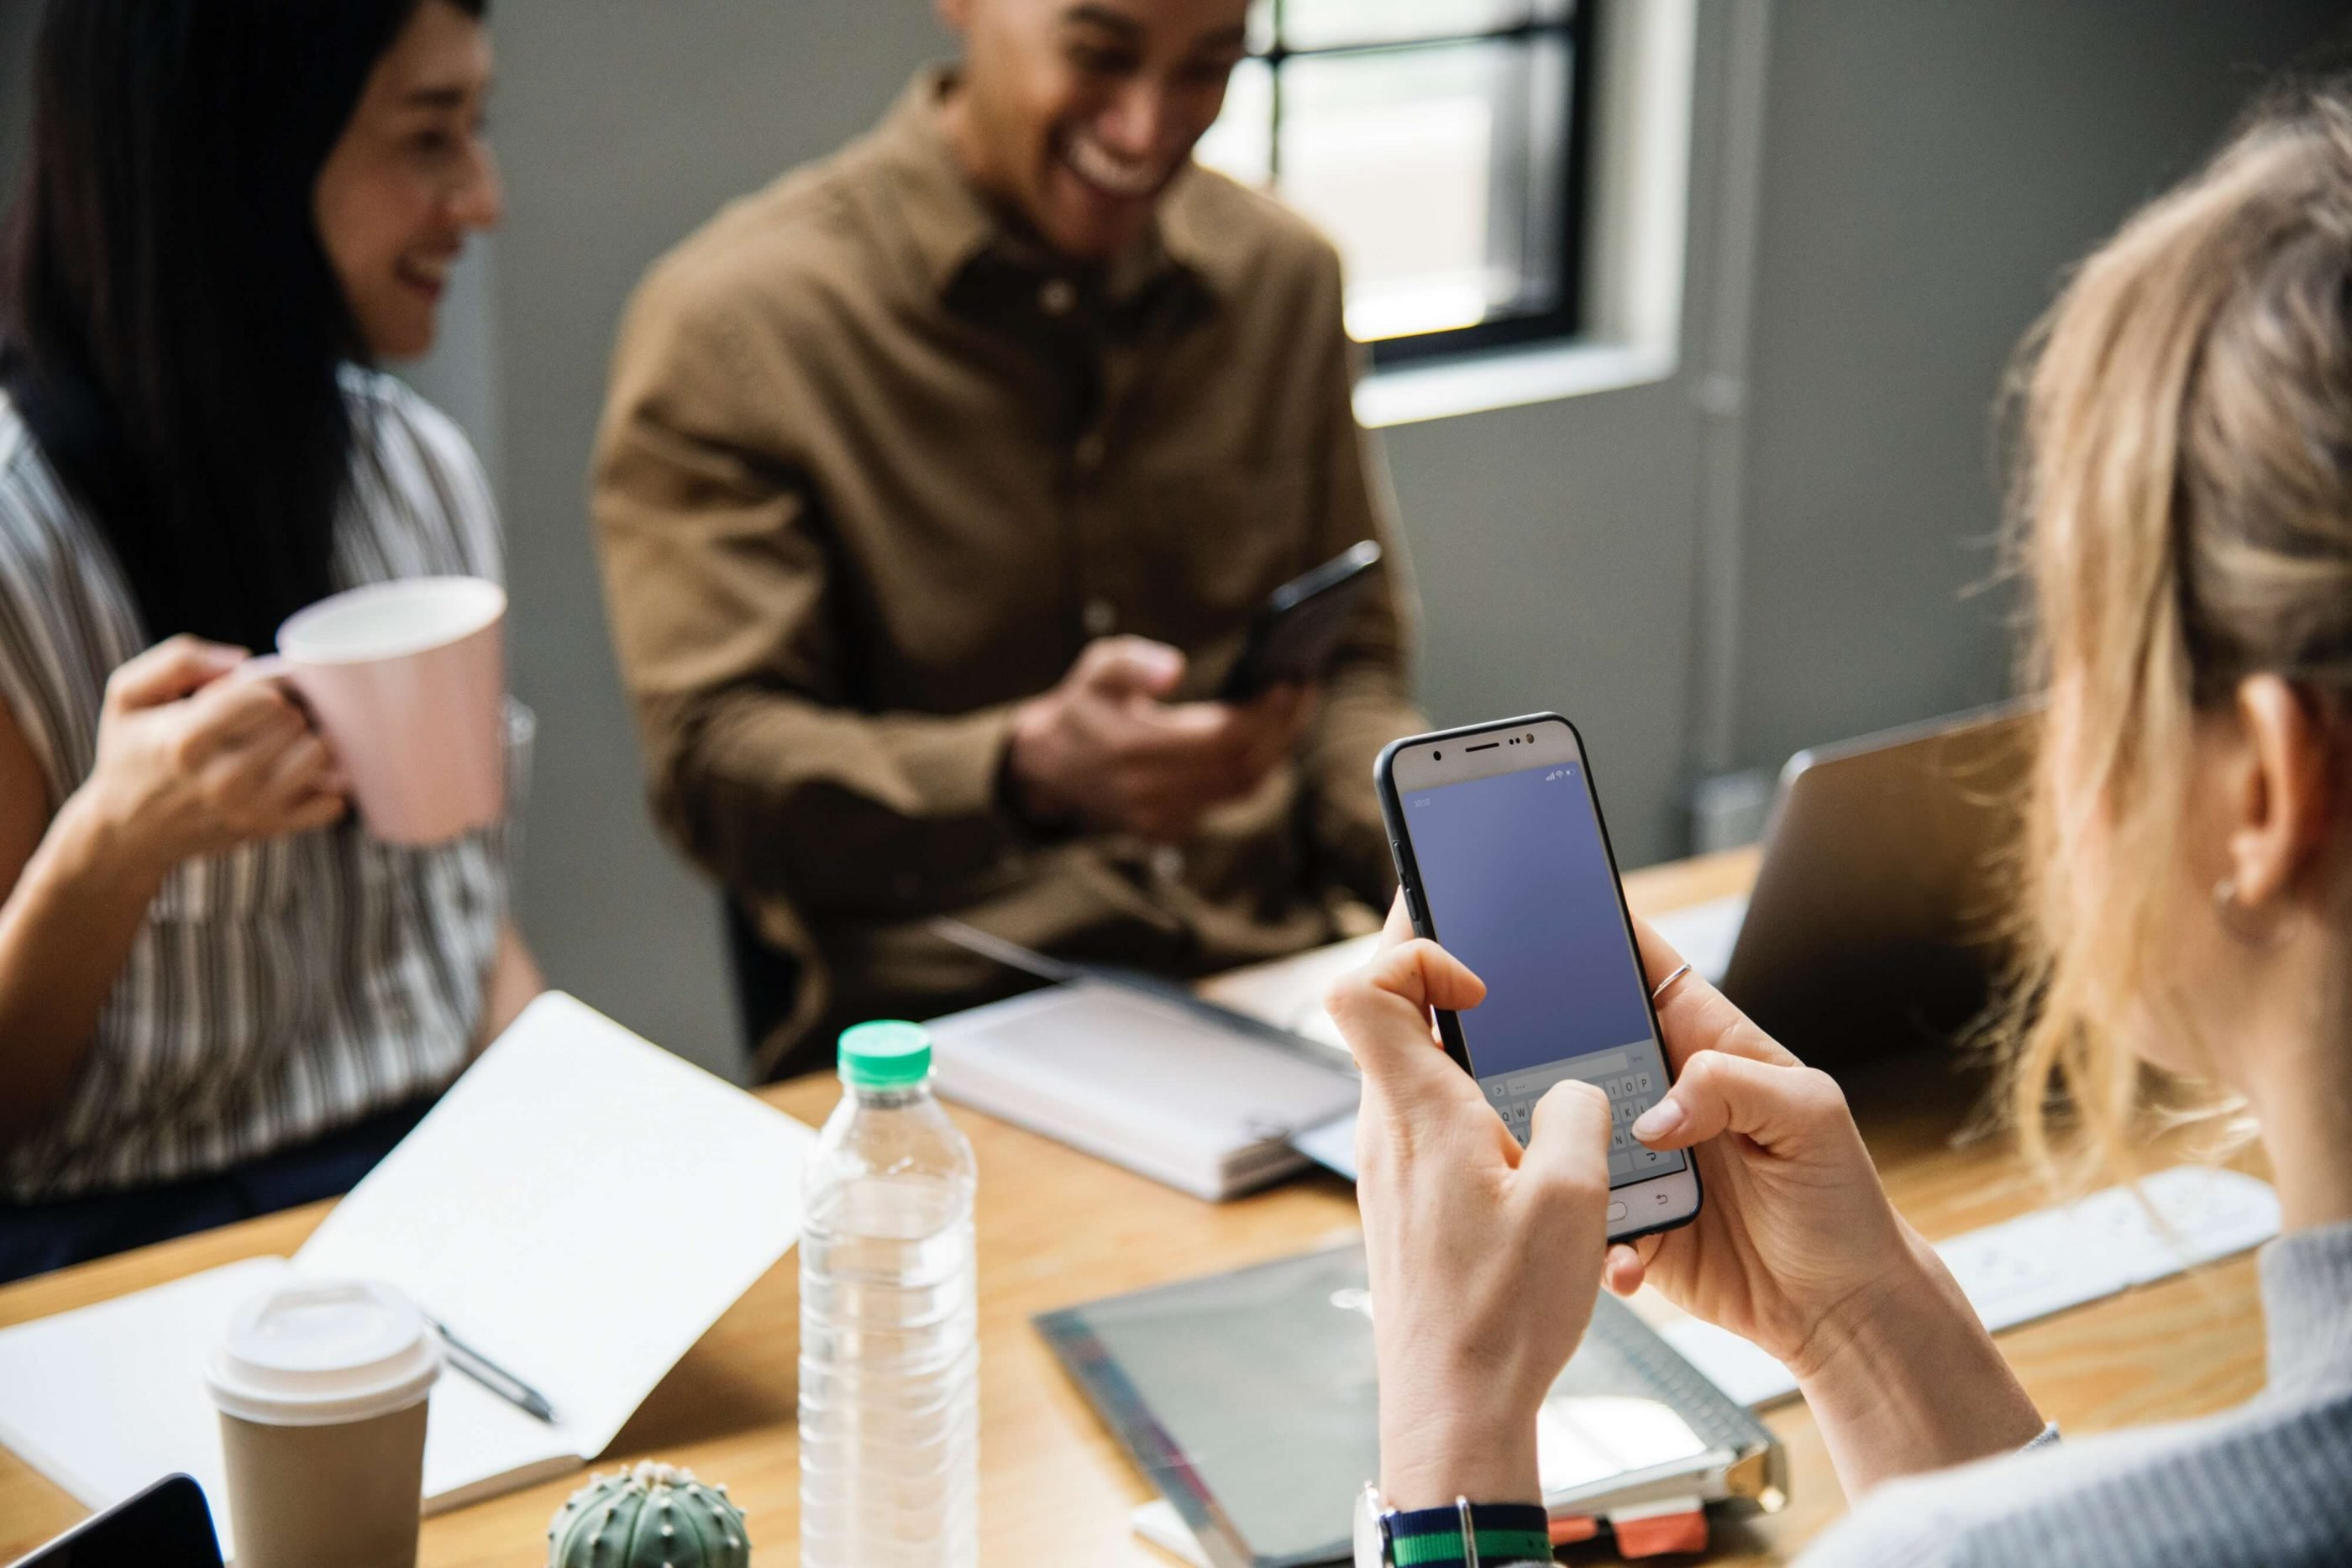 Team meetings can be derailed when people use their cell phones during the meeting.